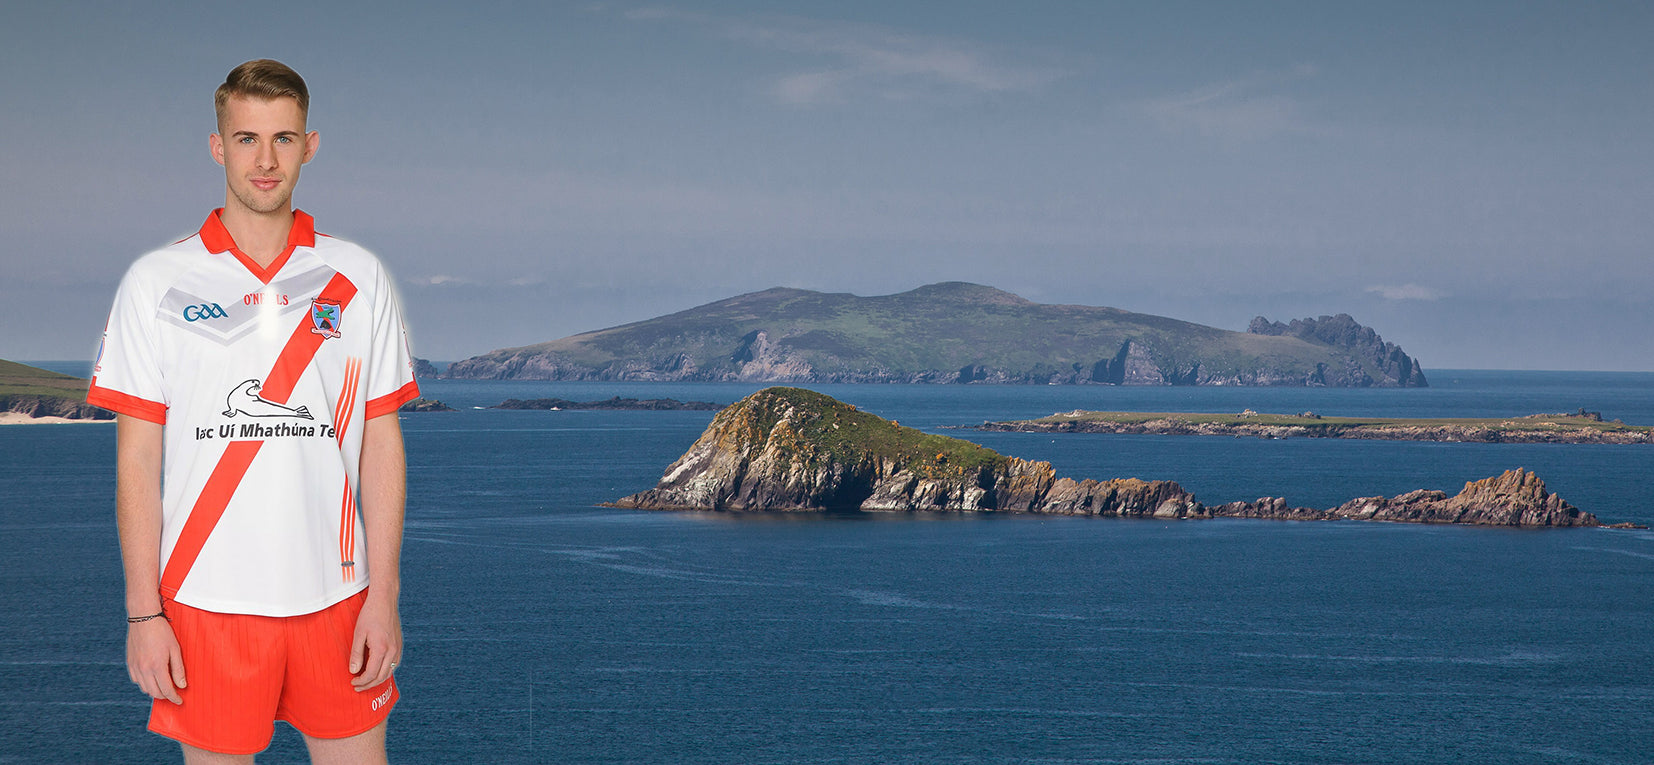 An Ghaeltacht GAA Jersey with an Fear Marbh or the sleeping giant Island in  the background